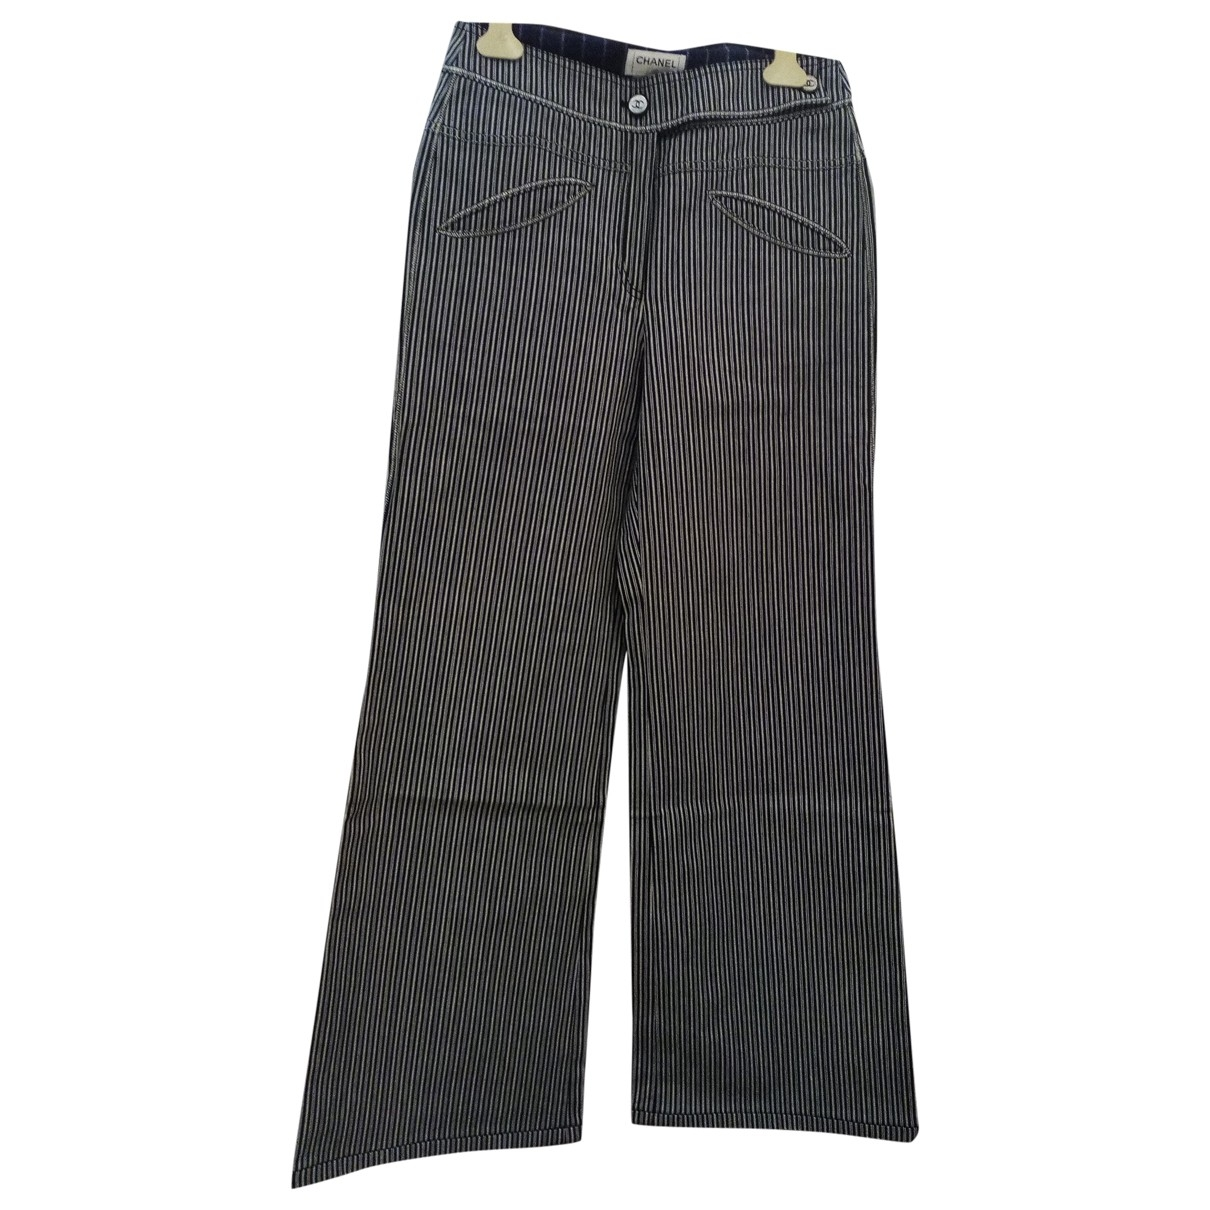 Chanel \N Grey Cotton Trousers for Women 40 FR